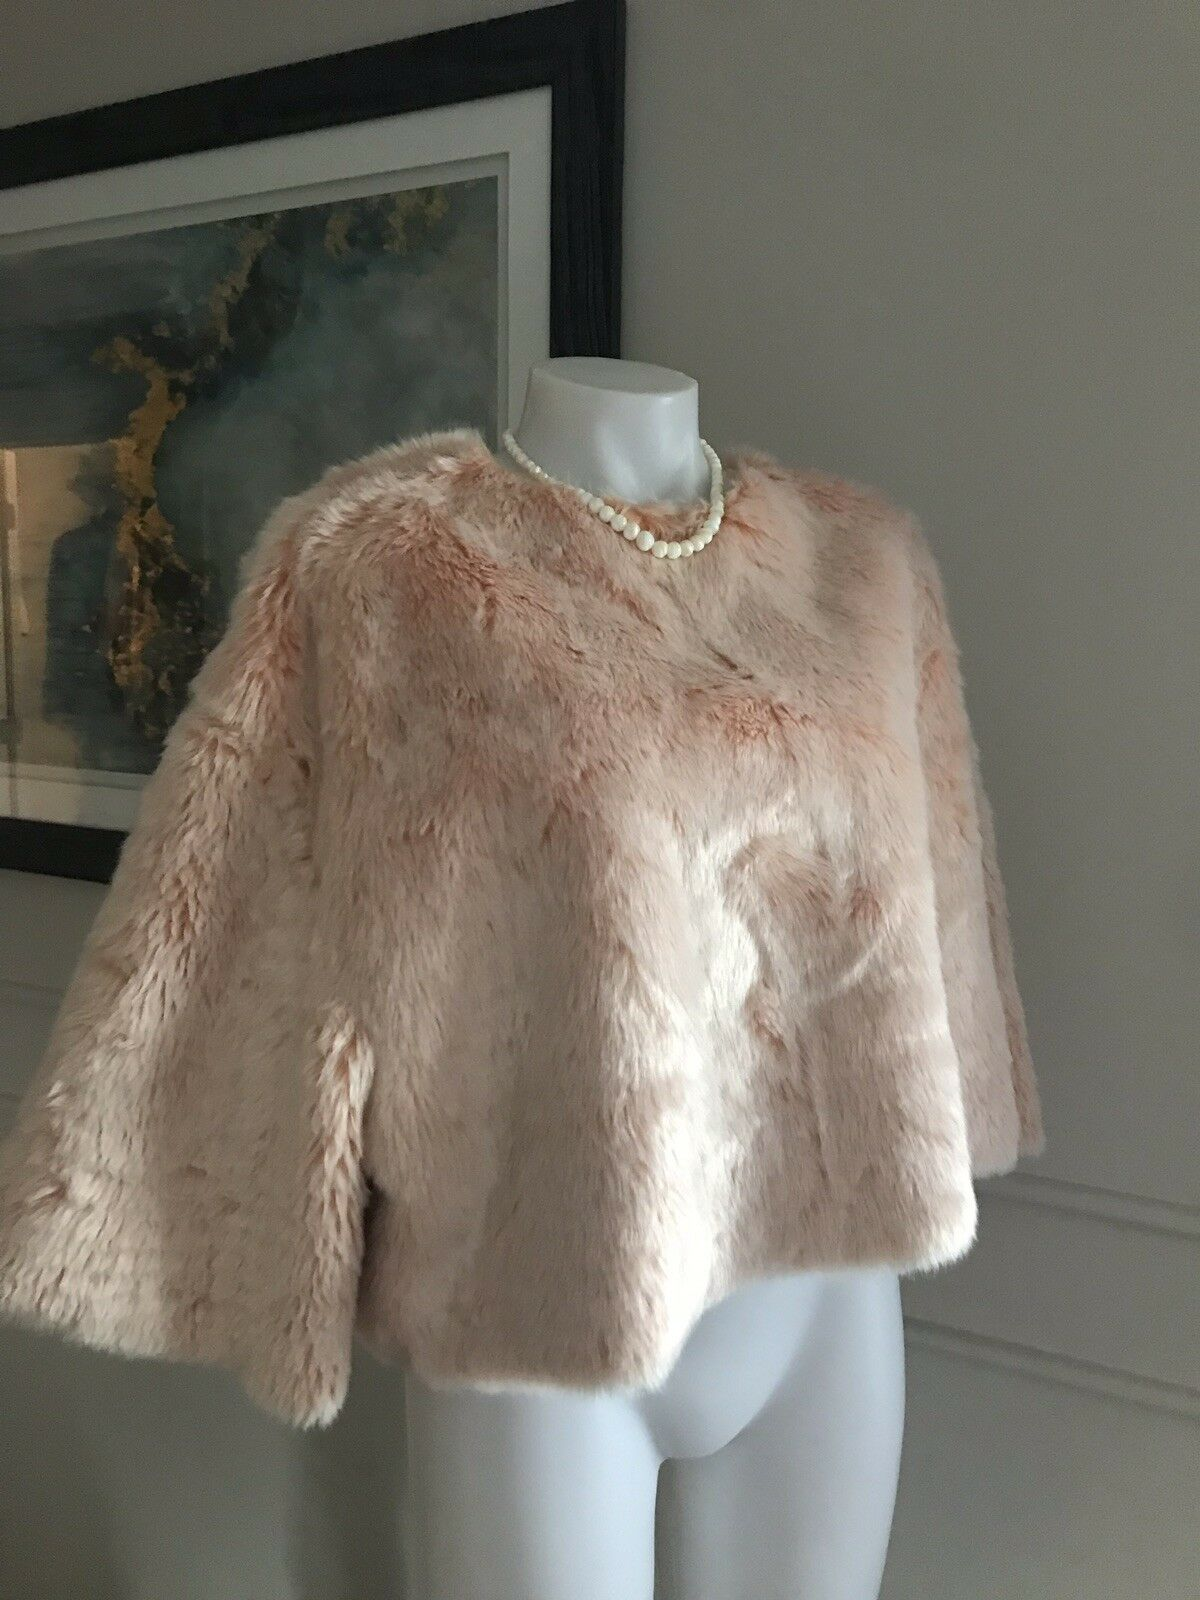 NWT Zara Woman's Poncho Faux Fur Light Pink size Small